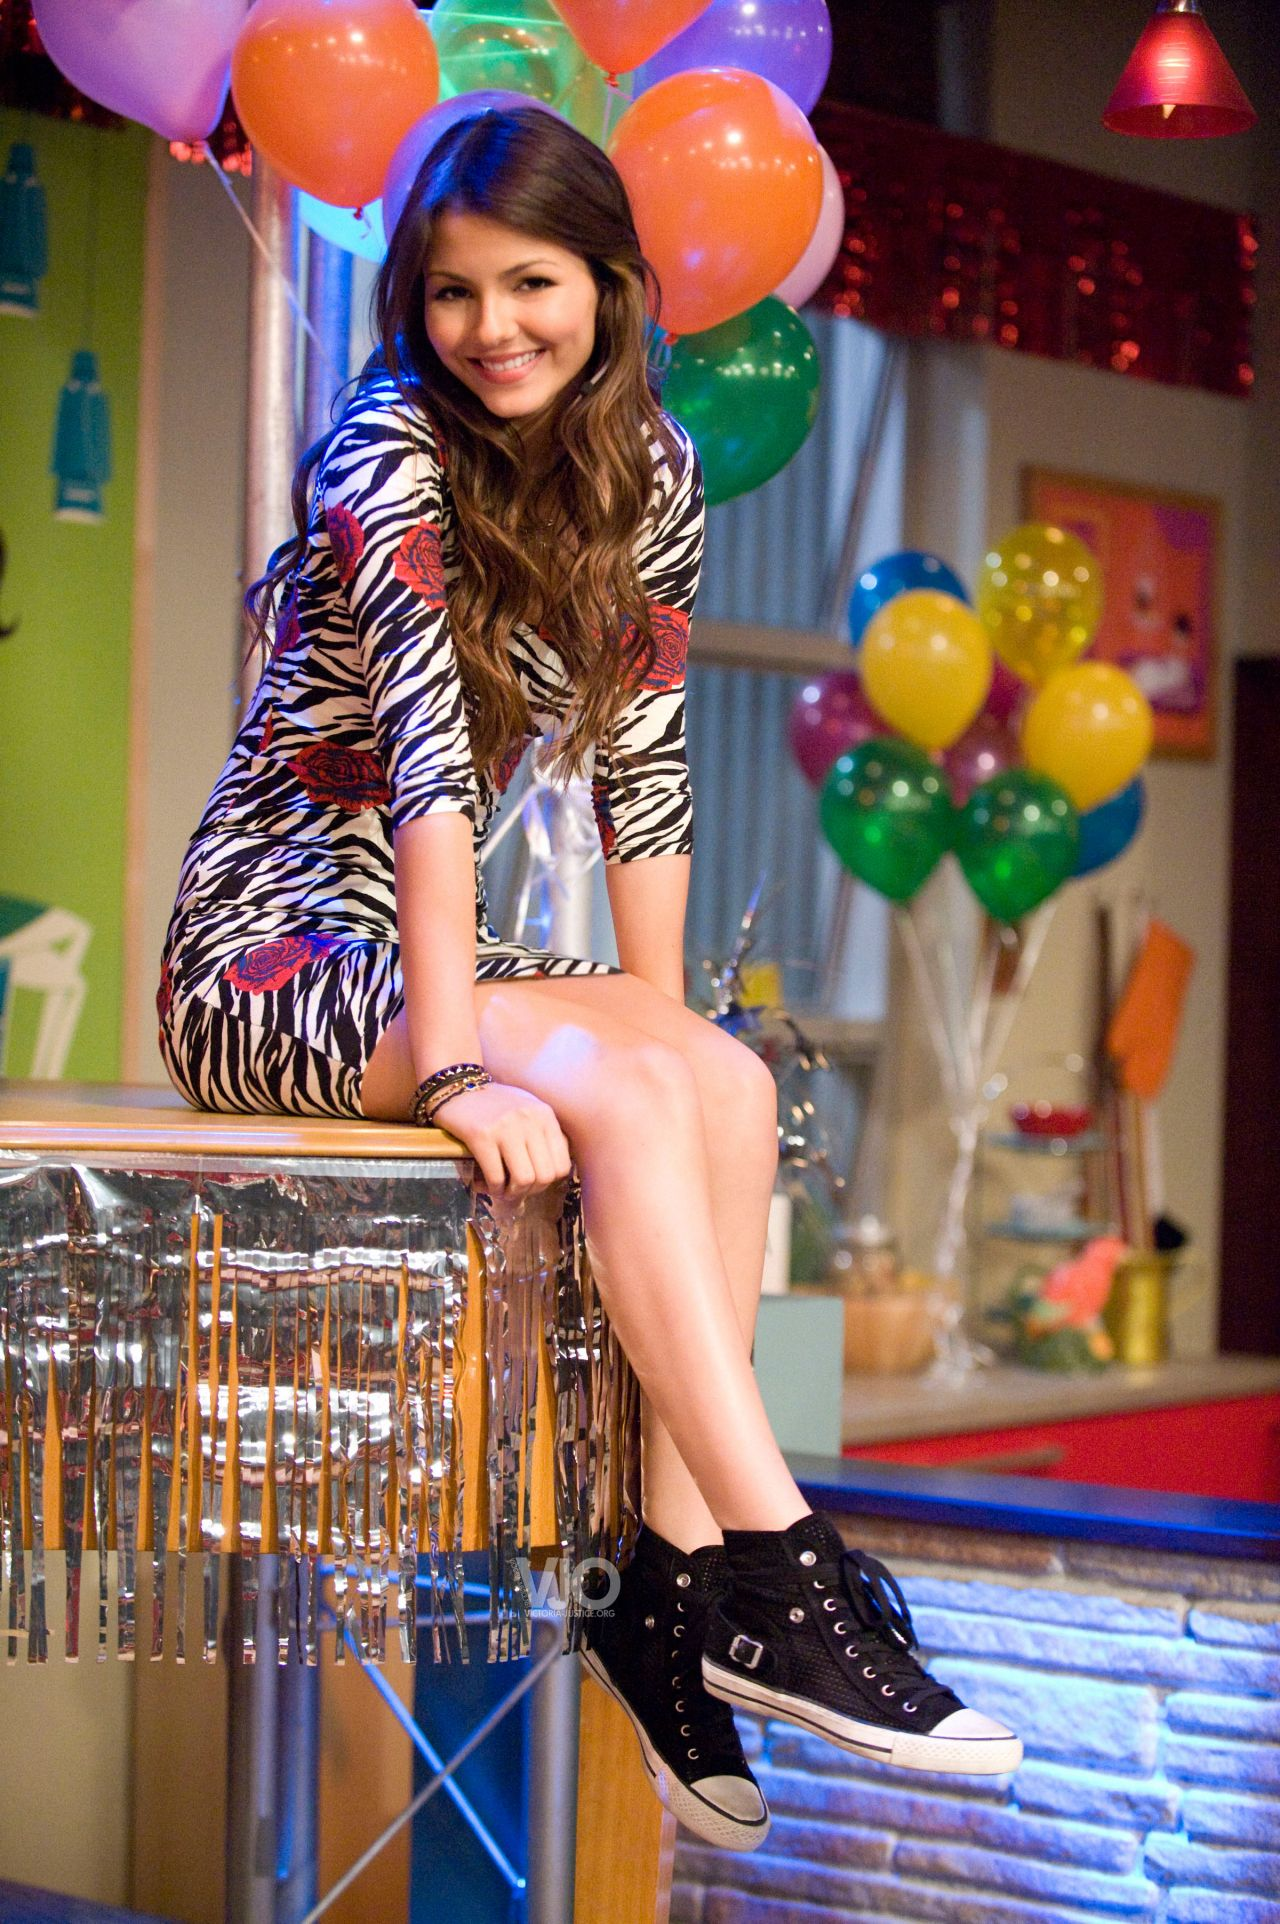 Victoria Justice - 21st Birthday Photo Collection